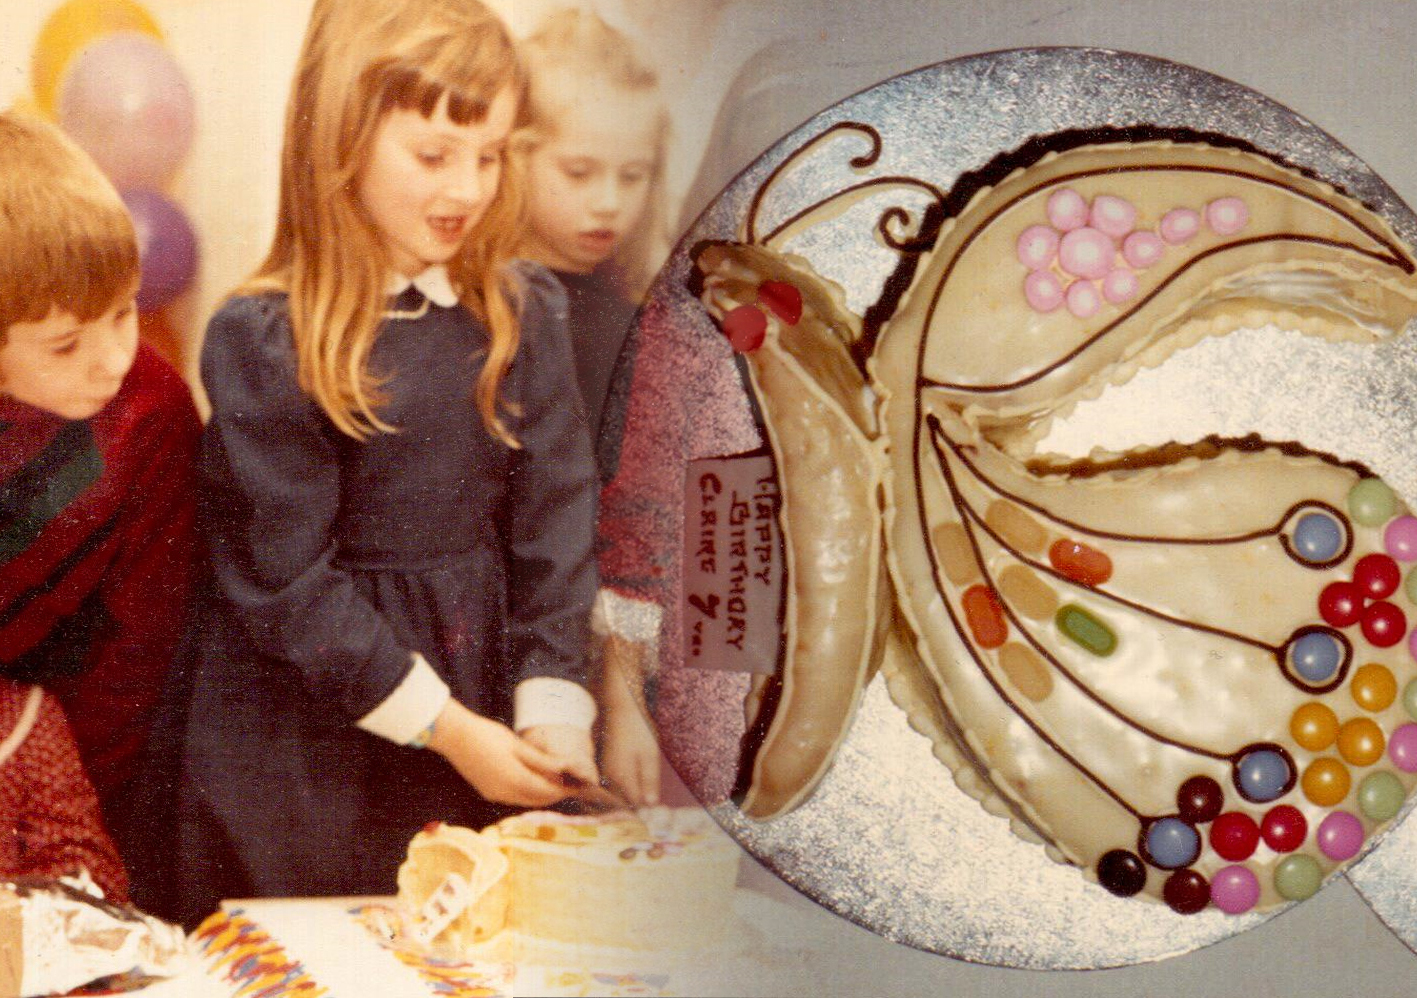 Seven year old Ginger Gorman cuts her butterfly birthday cake